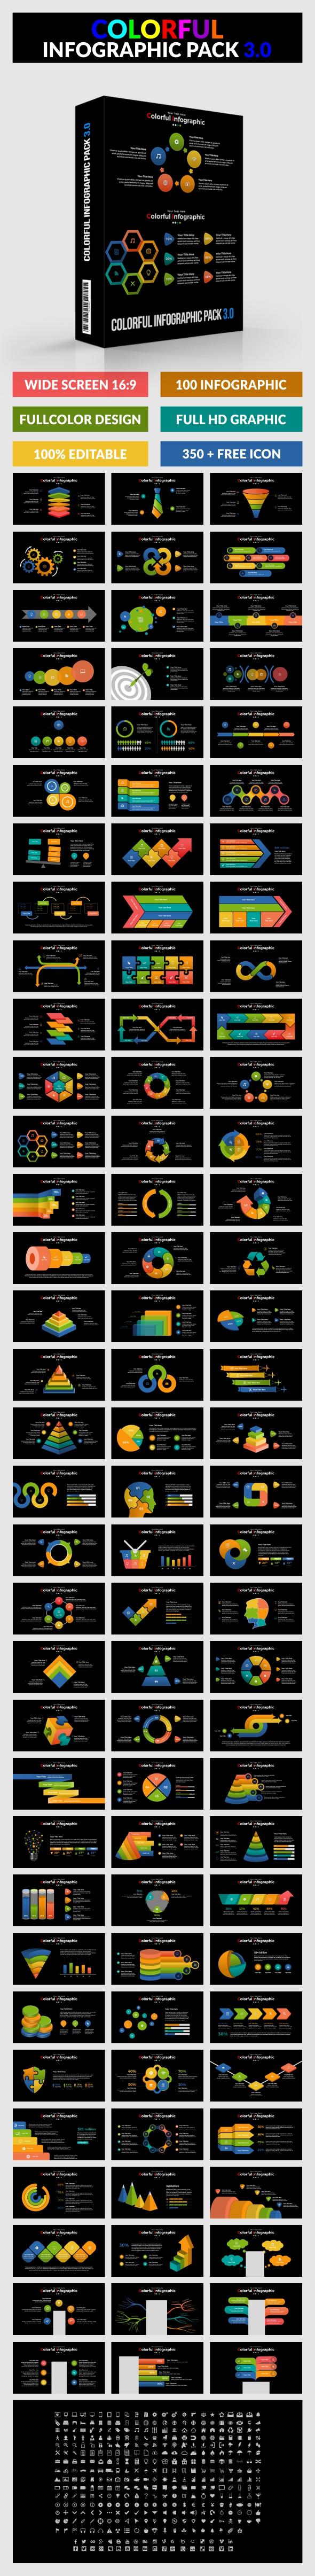 Colorful Infographic Pack 3.0 - PowerPoint - PowerPoint Templates Presentation Templates